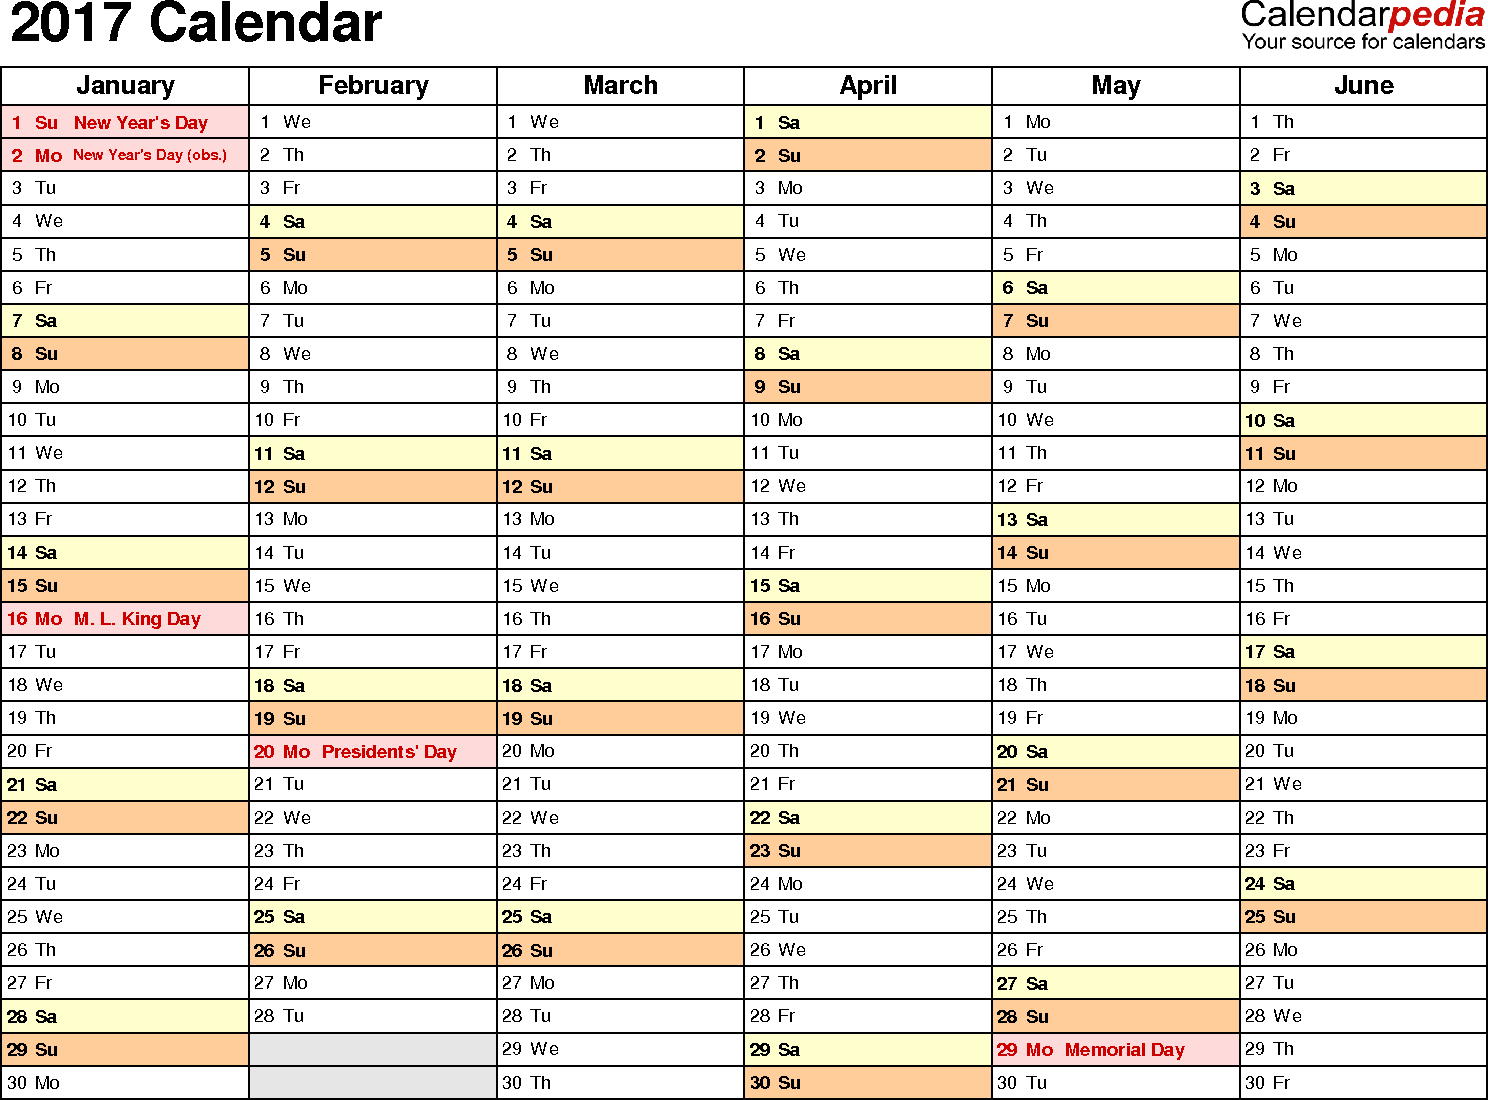 Ediblewildsus  Surprising  Calendar  Download  Free Printable Excel Templates Xls With Goodlooking Template   Calendar For Excel Months Horizontally  Pages Landscape Orientation With Awesome Spearman Correlation In Excel Also Vba Excel Delete Column In Addition Timesheet Template Excel Free And Adding Watermark In Excel As Well As Microsoft Excel Dashboard Templates Additionally Genealogy Chart Excel From Calendarpediacom With Ediblewildsus  Goodlooking  Calendar  Download  Free Printable Excel Templates Xls With Awesome Template   Calendar For Excel Months Horizontally  Pages Landscape Orientation And Surprising Spearman Correlation In Excel Also Vba Excel Delete Column In Addition Timesheet Template Excel Free From Calendarpediacom